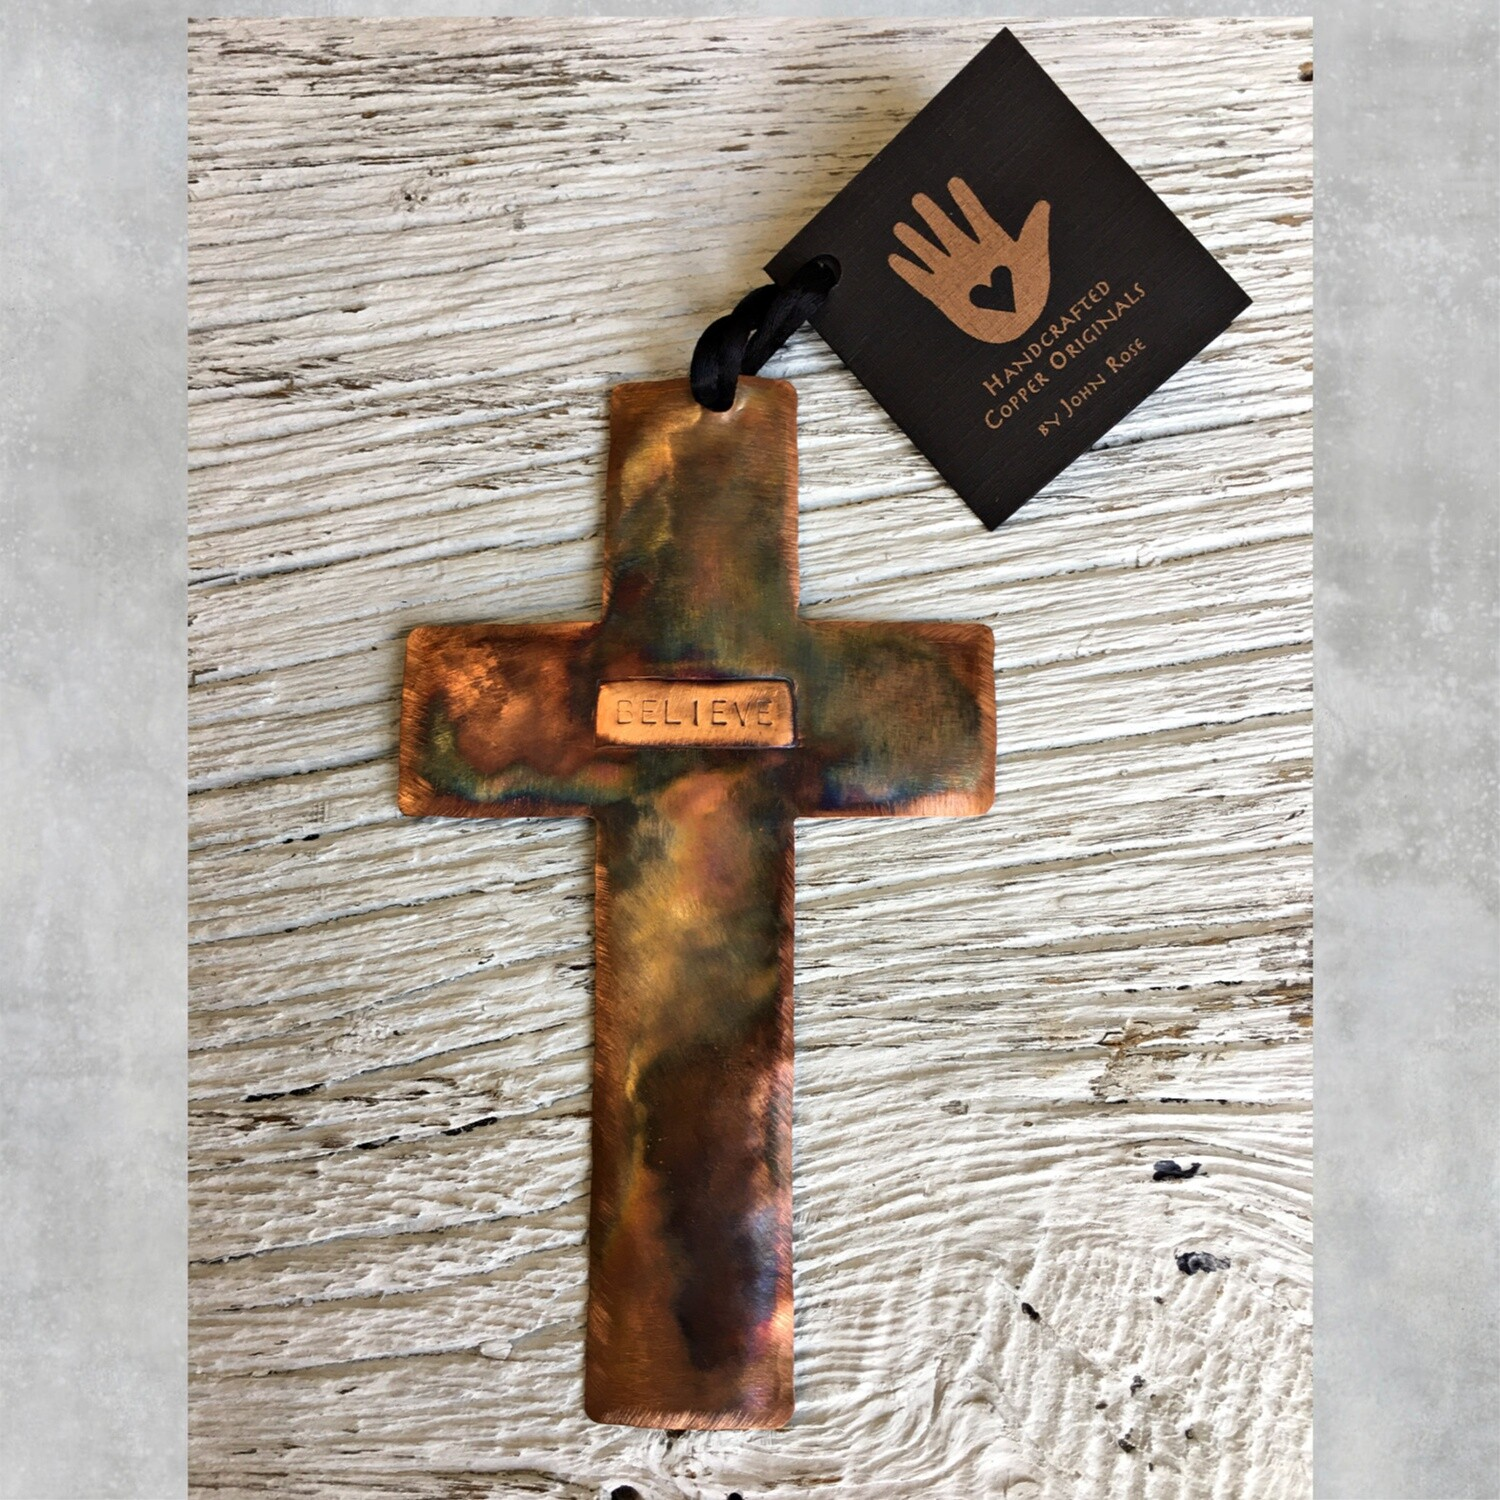 26-16-19 Copper Cross w/ Believe Ornament $18.50